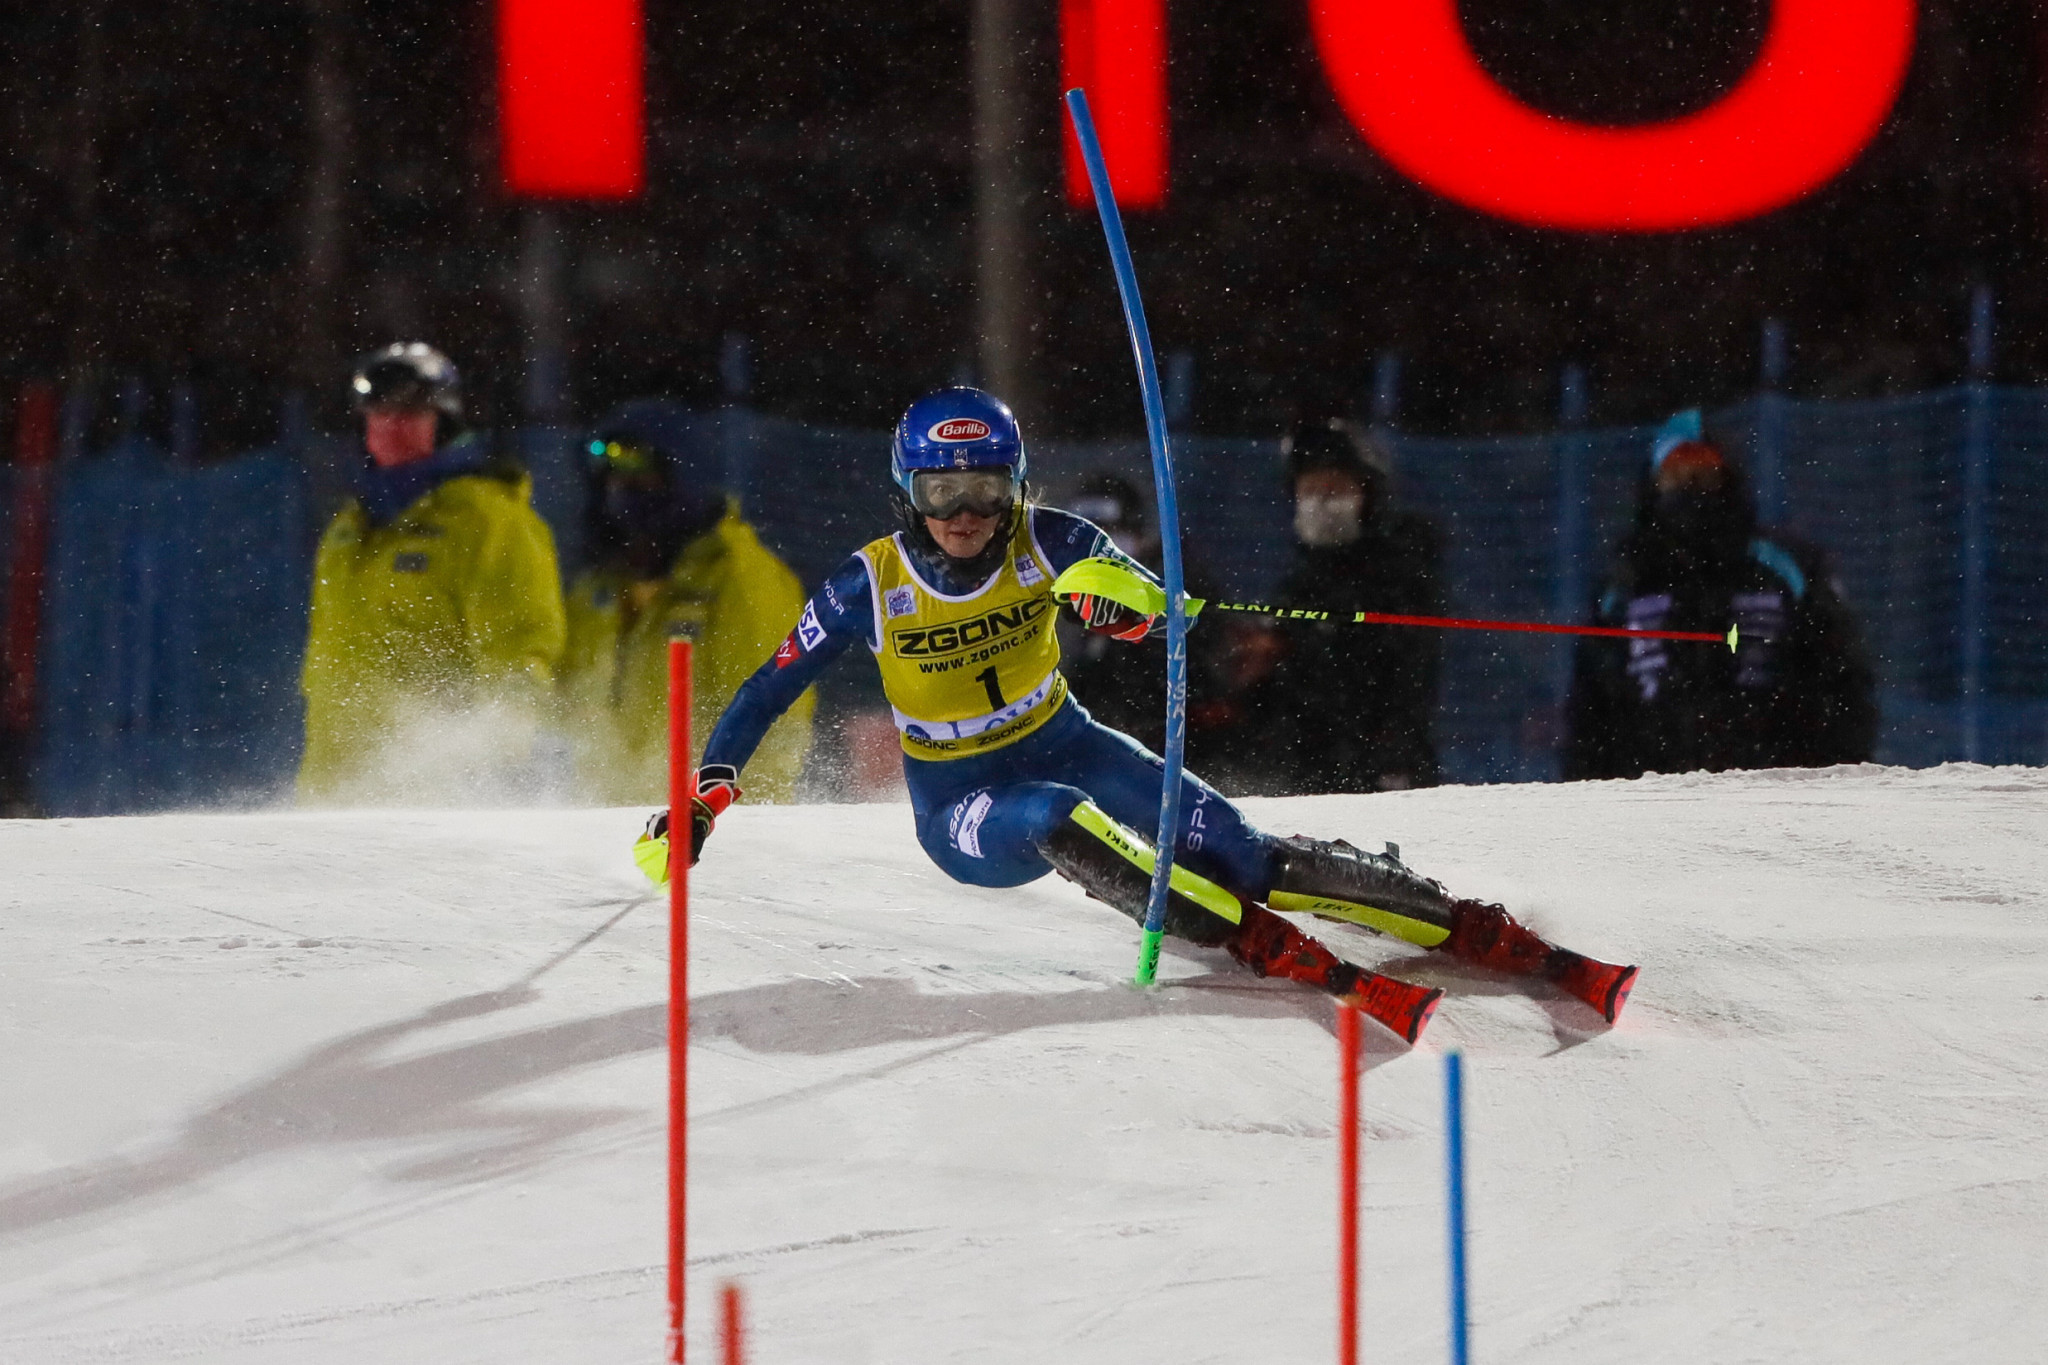 Mikaela Shiffrin had a solid comeback, finishing second in the women's slalom ©Getty Images